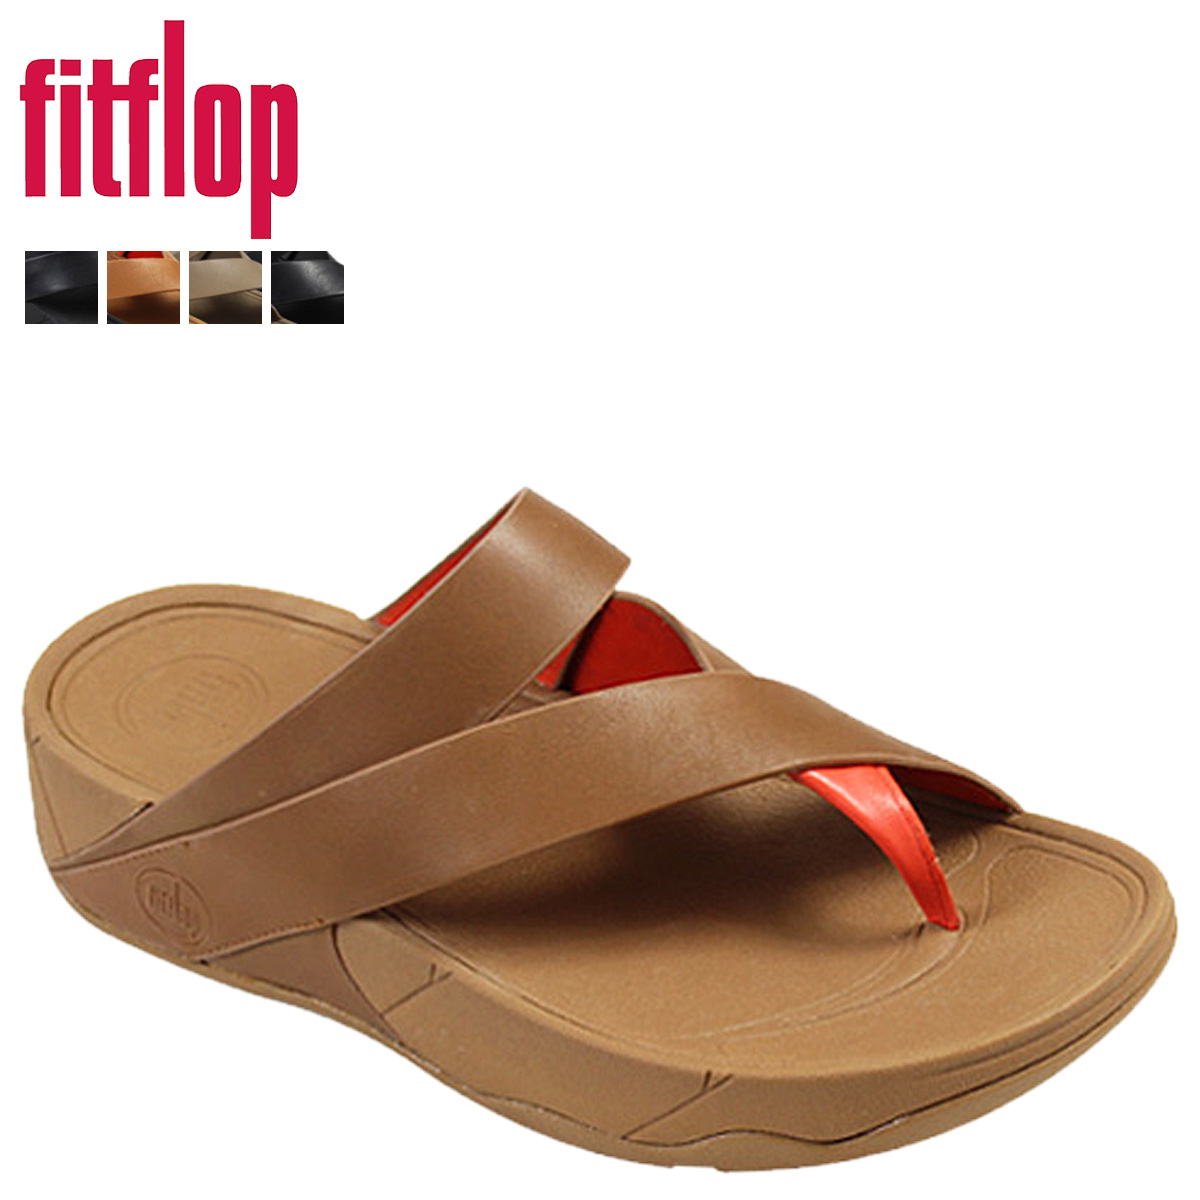 b9f508101172 ... mounted the first fit flop sandals. It is a new generation footwear  brand revolutionized the modern shoe industry don t understand the legs to  ...